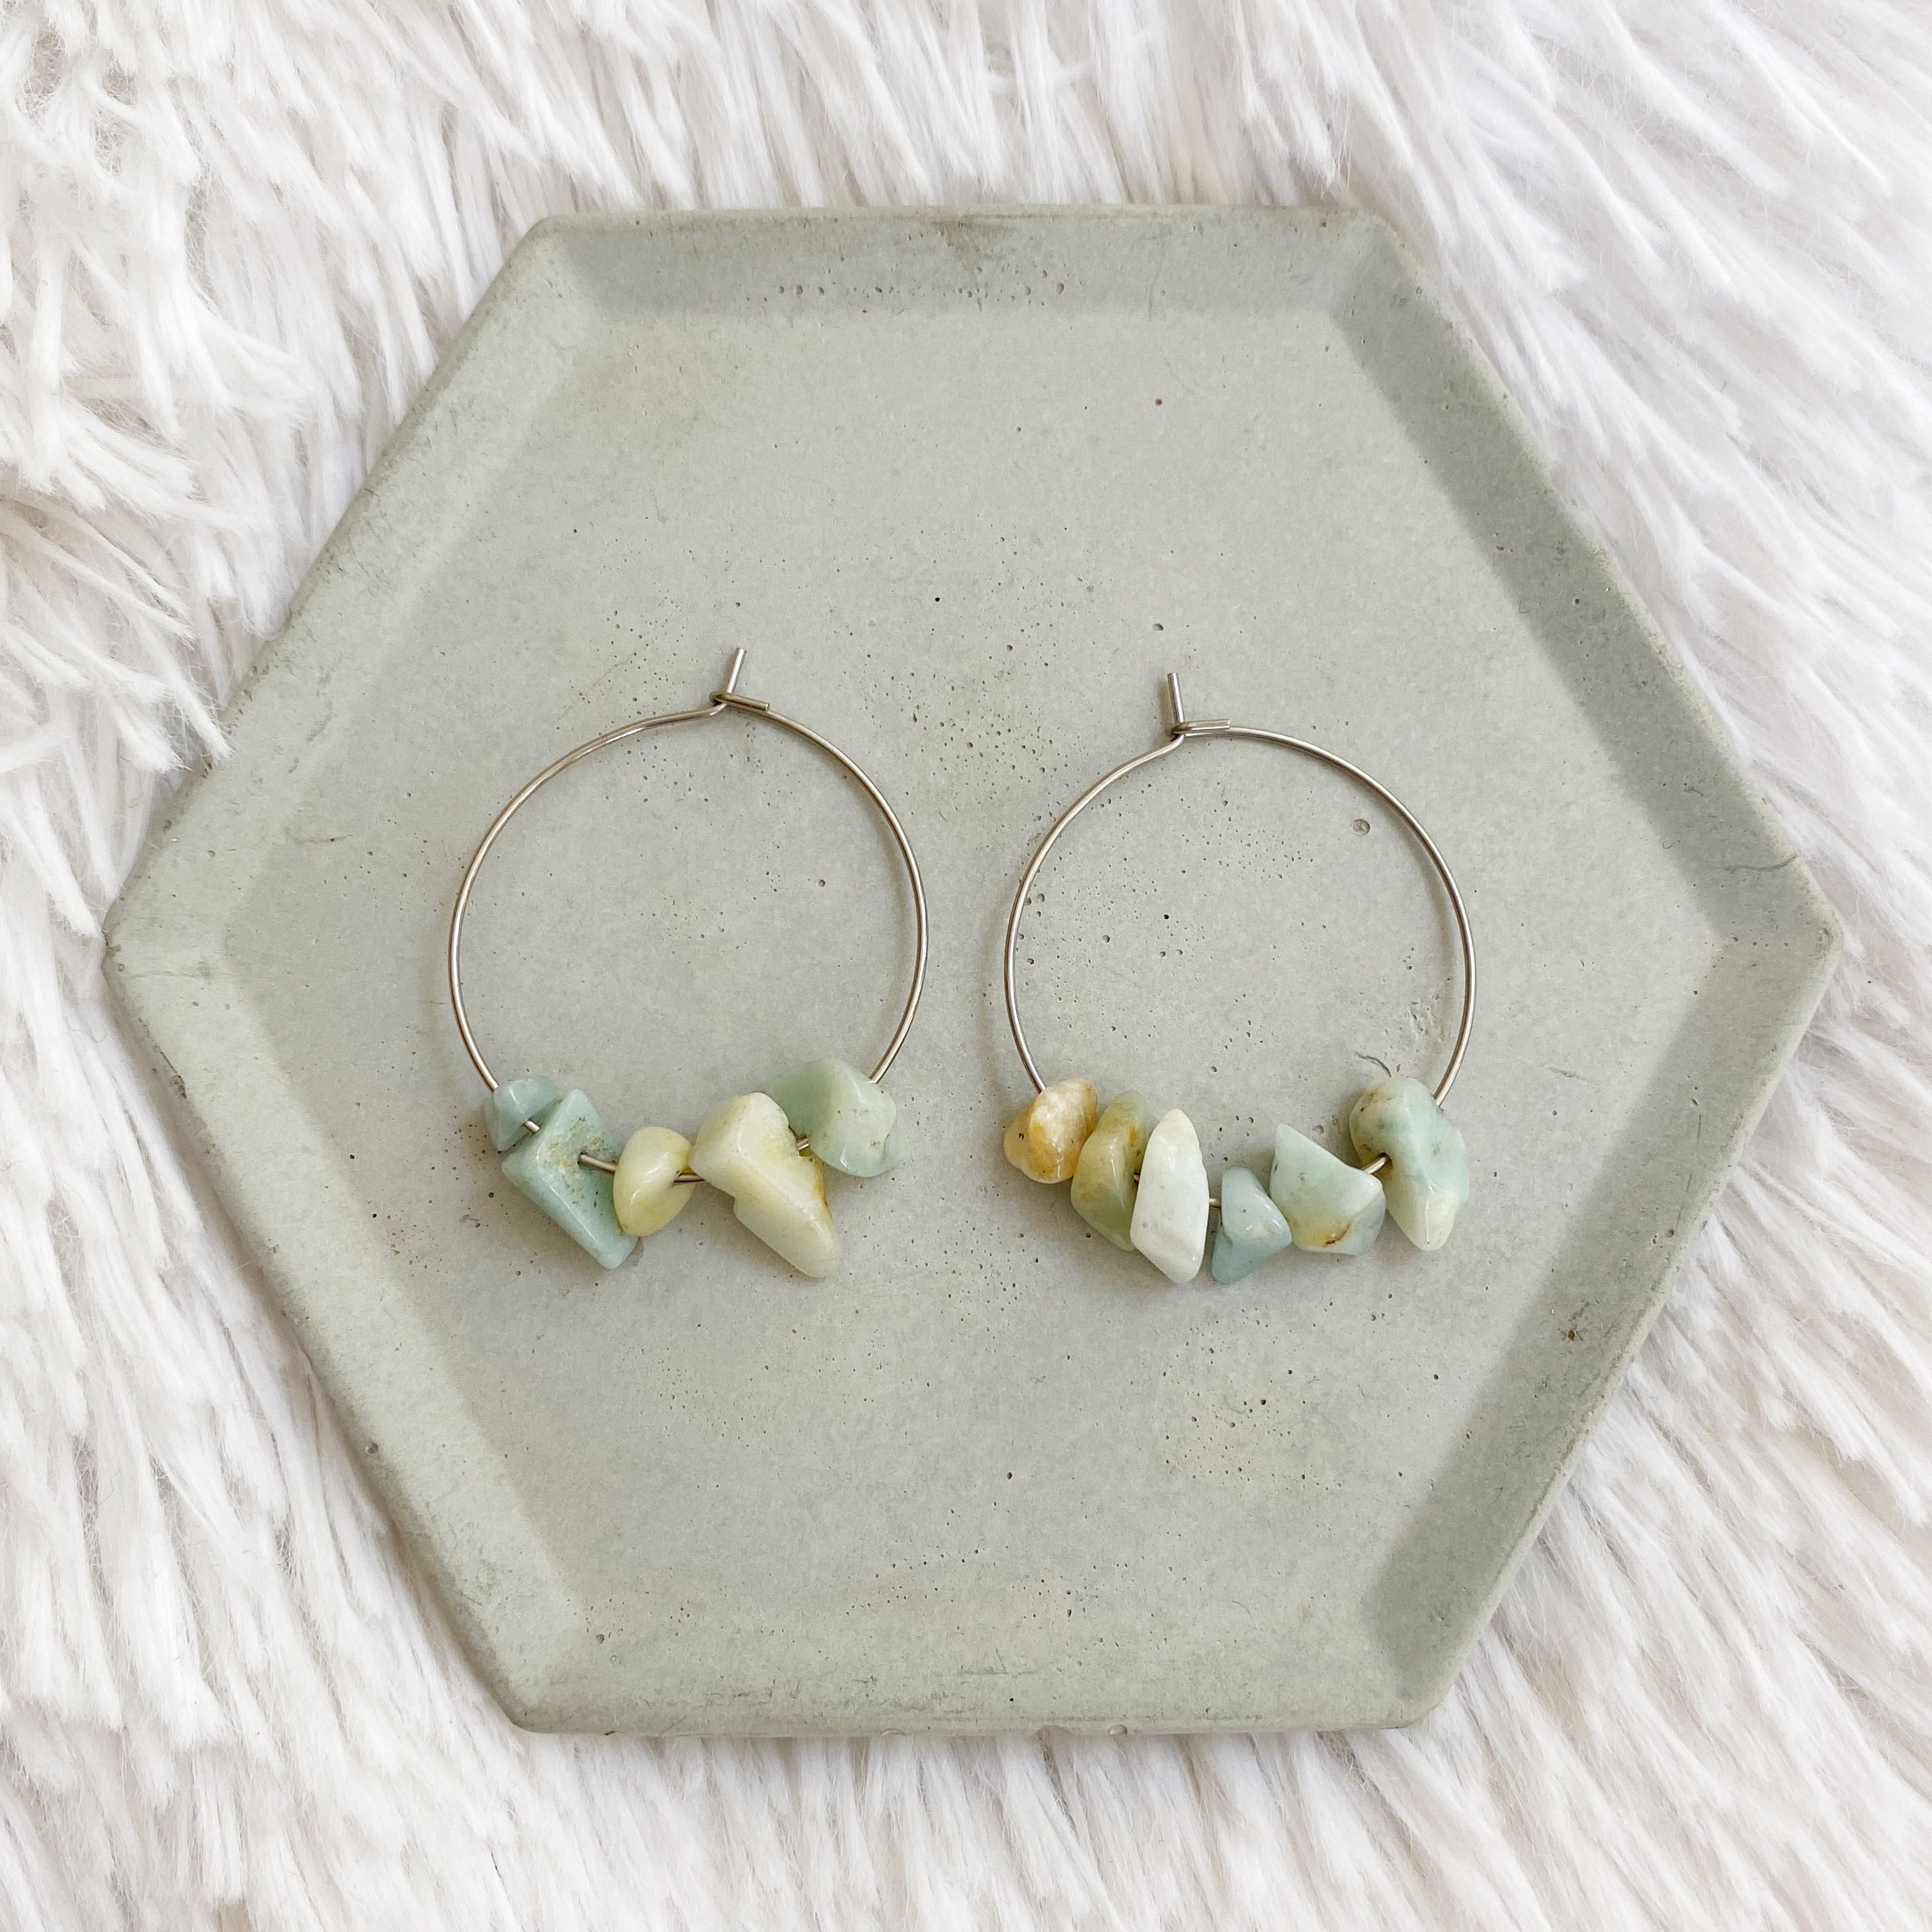 Stone Hoop Earrings - Amazonite